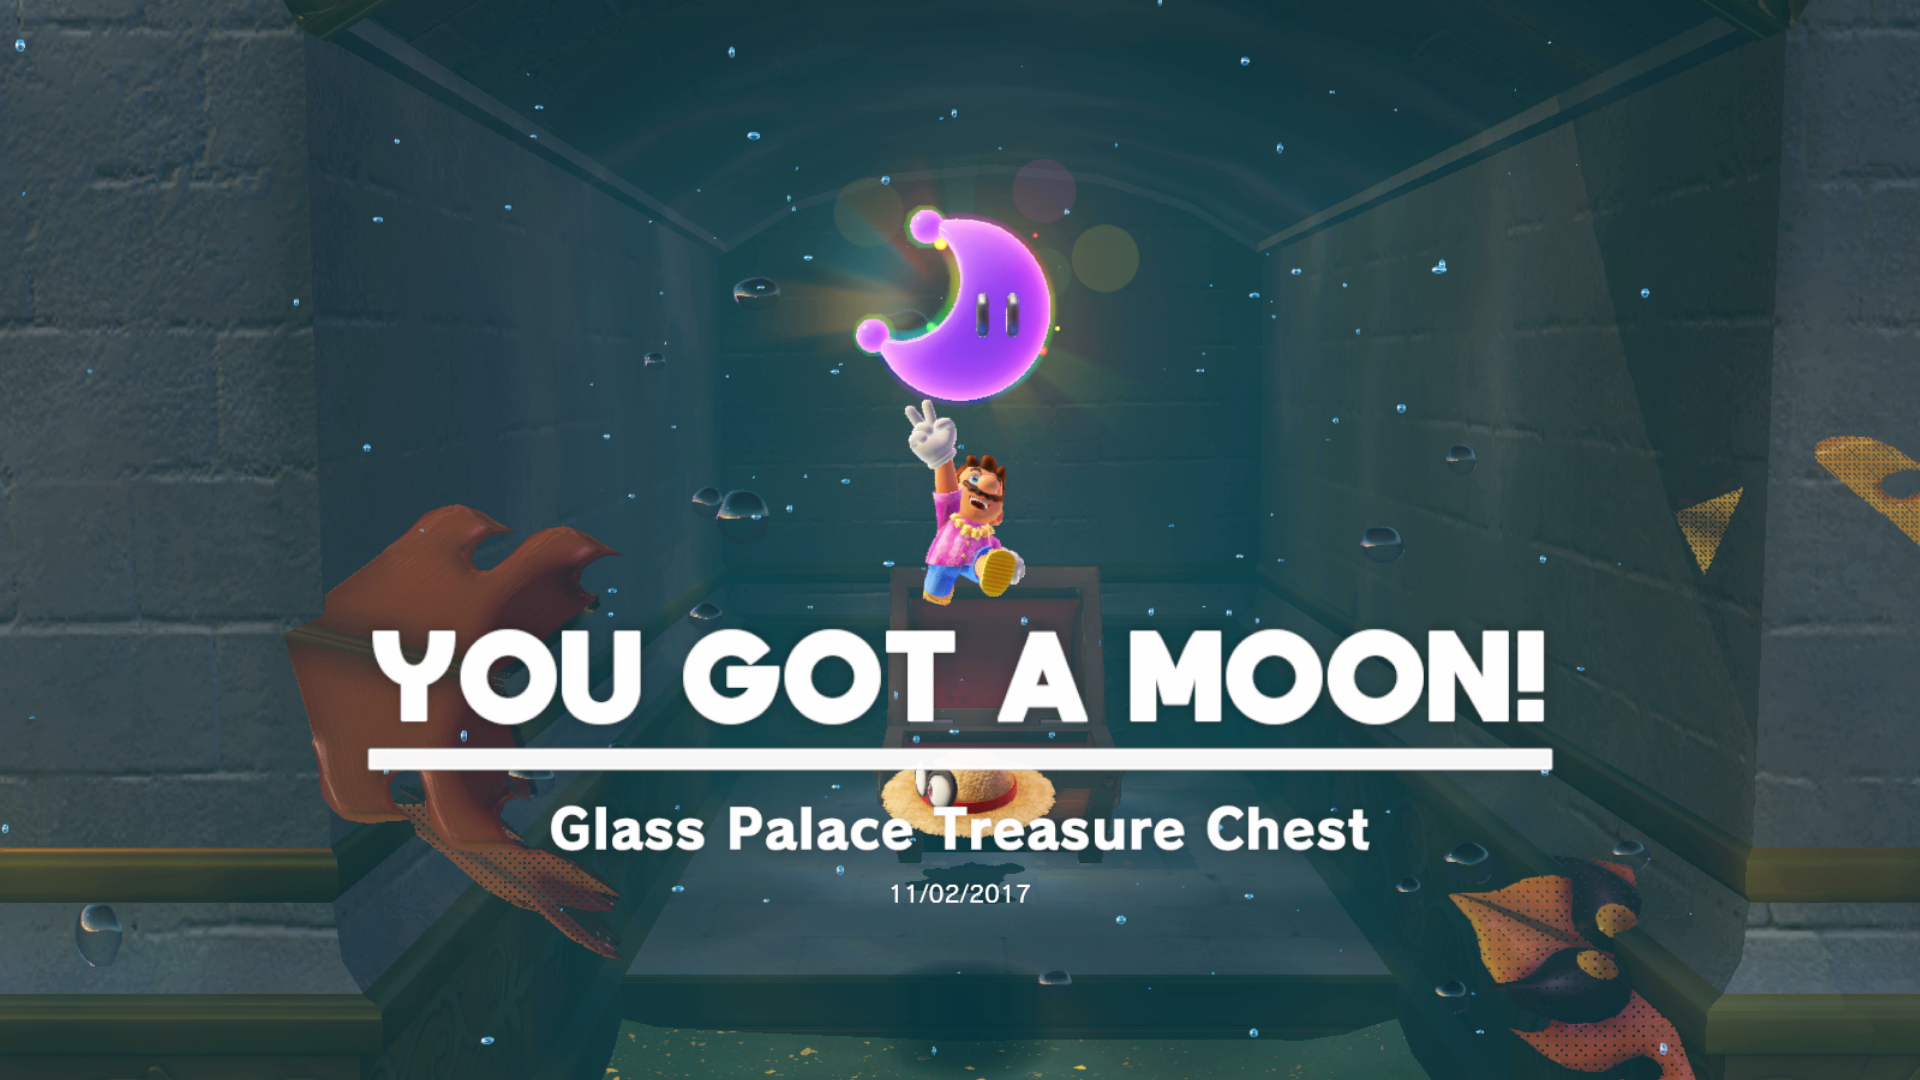 Glass Palace Treasure Chest